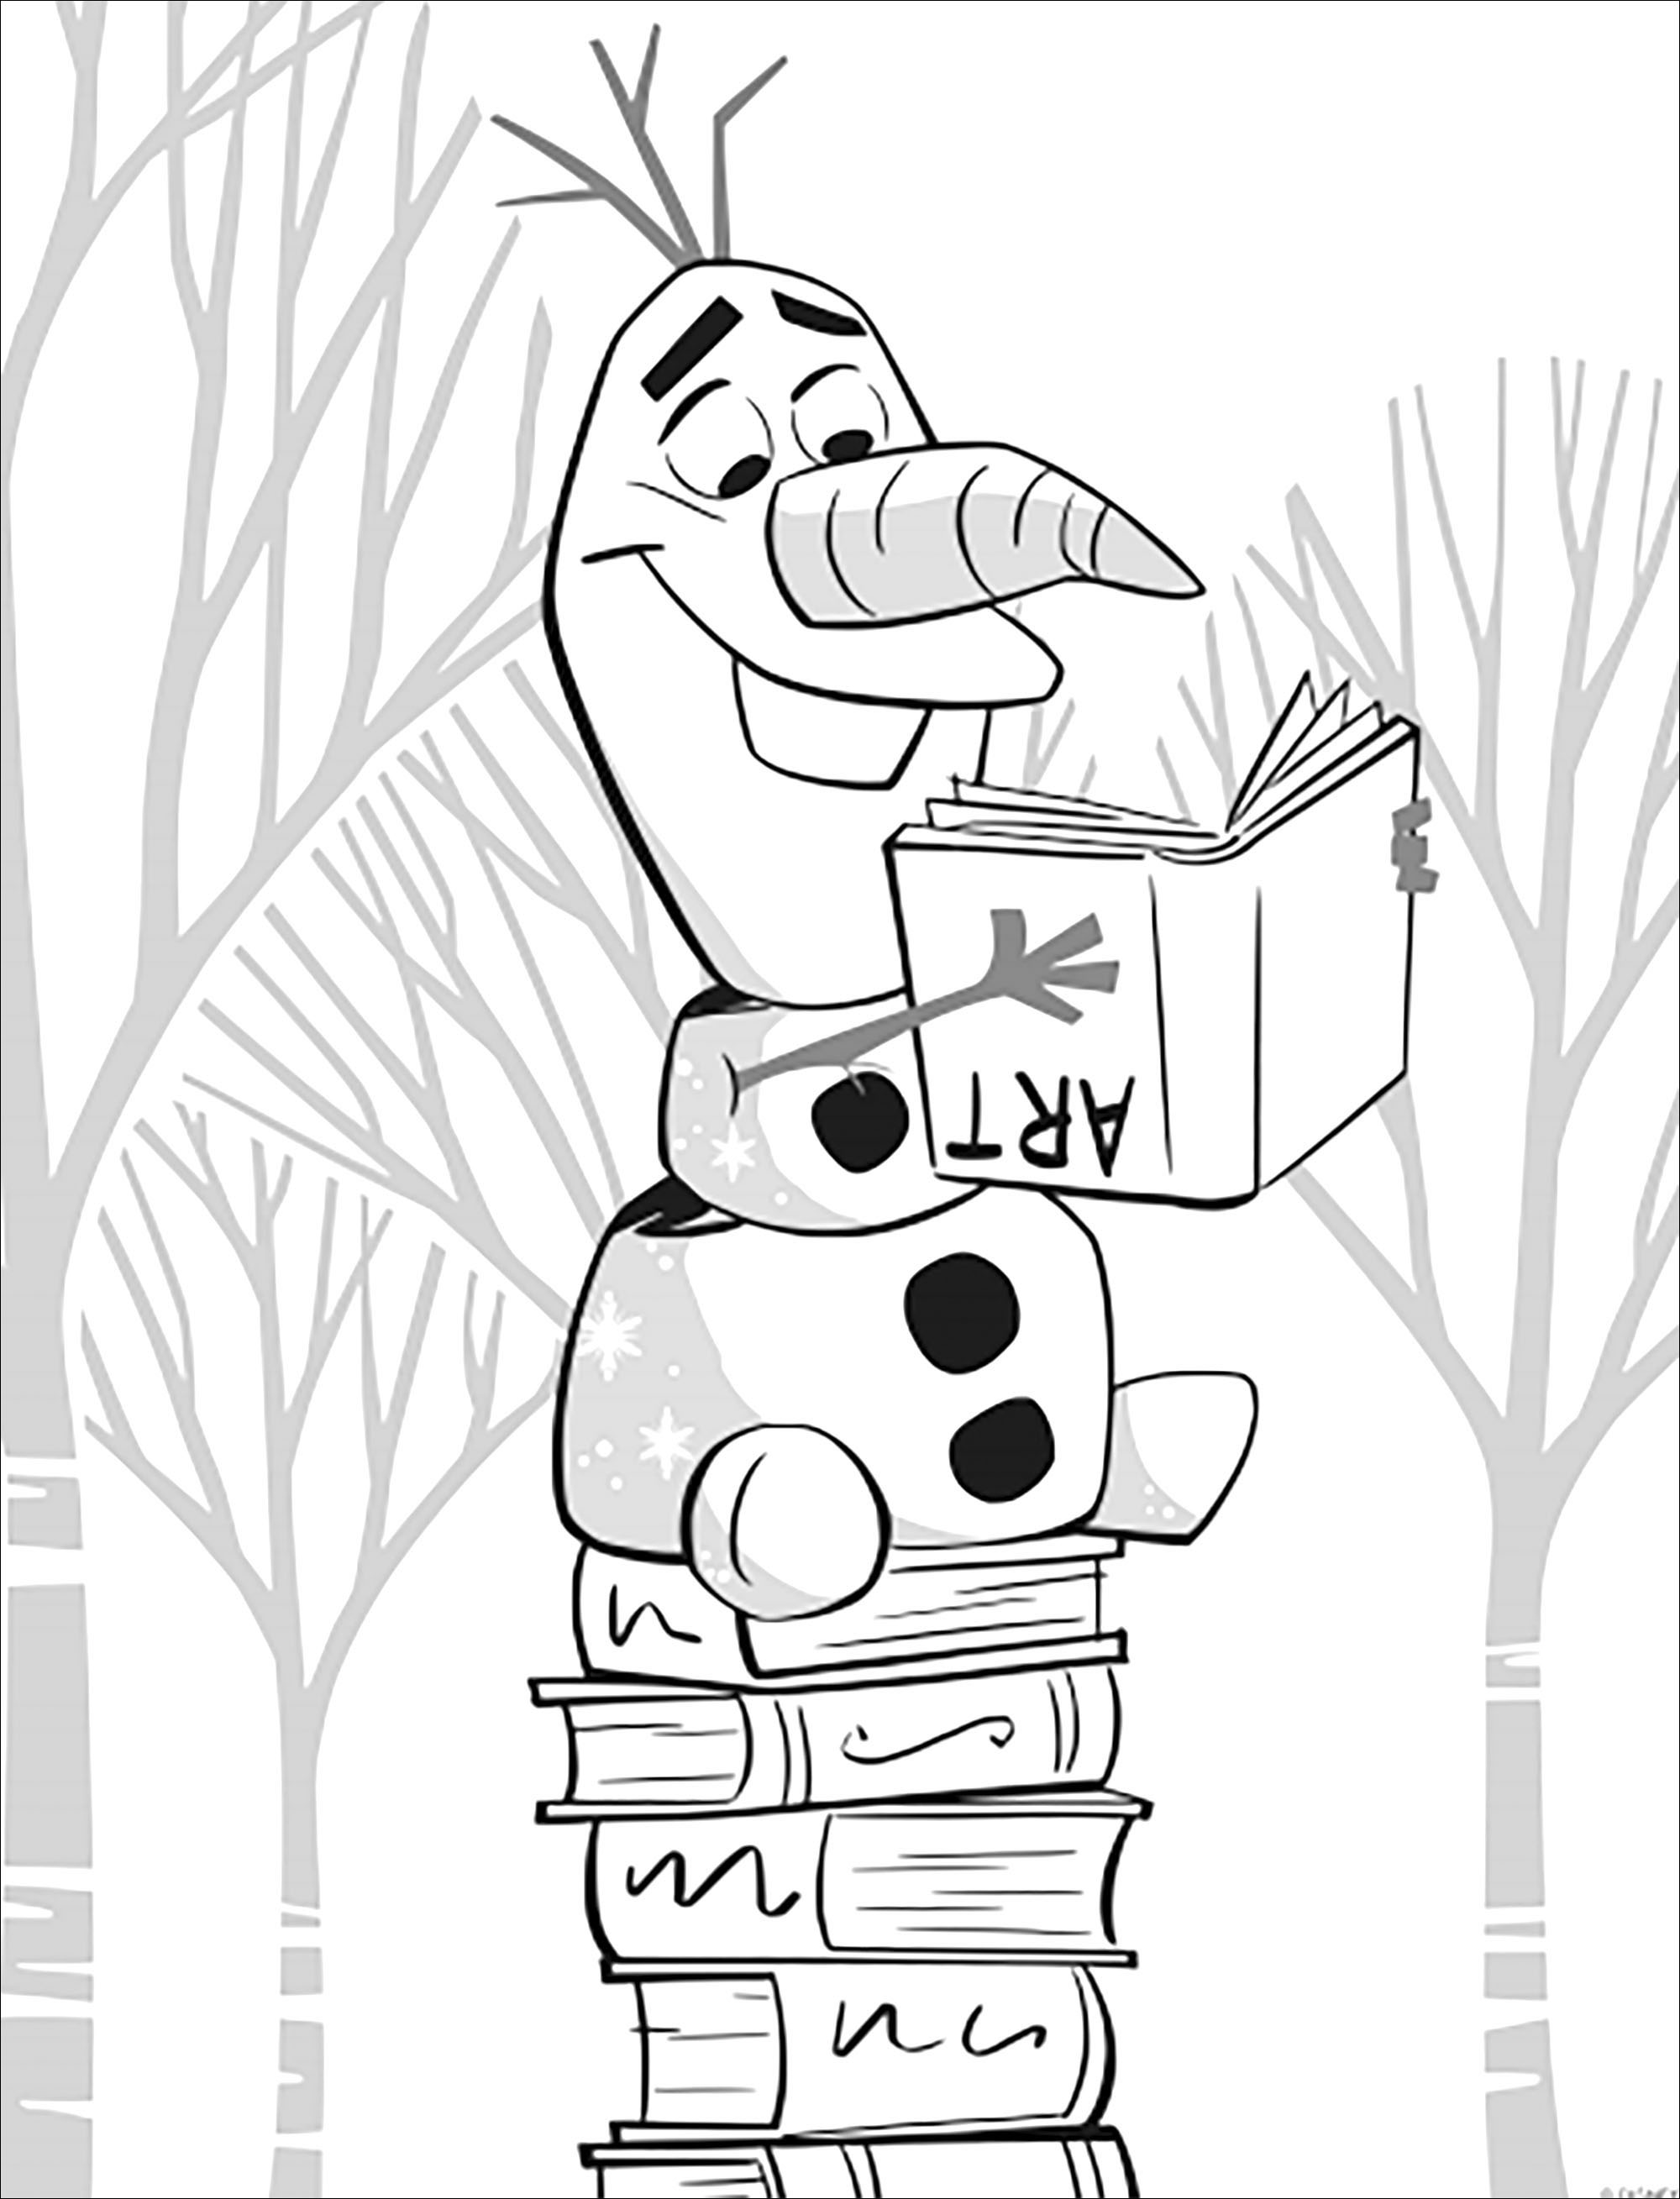 Simple Frozen 2 coloring page with Olaf